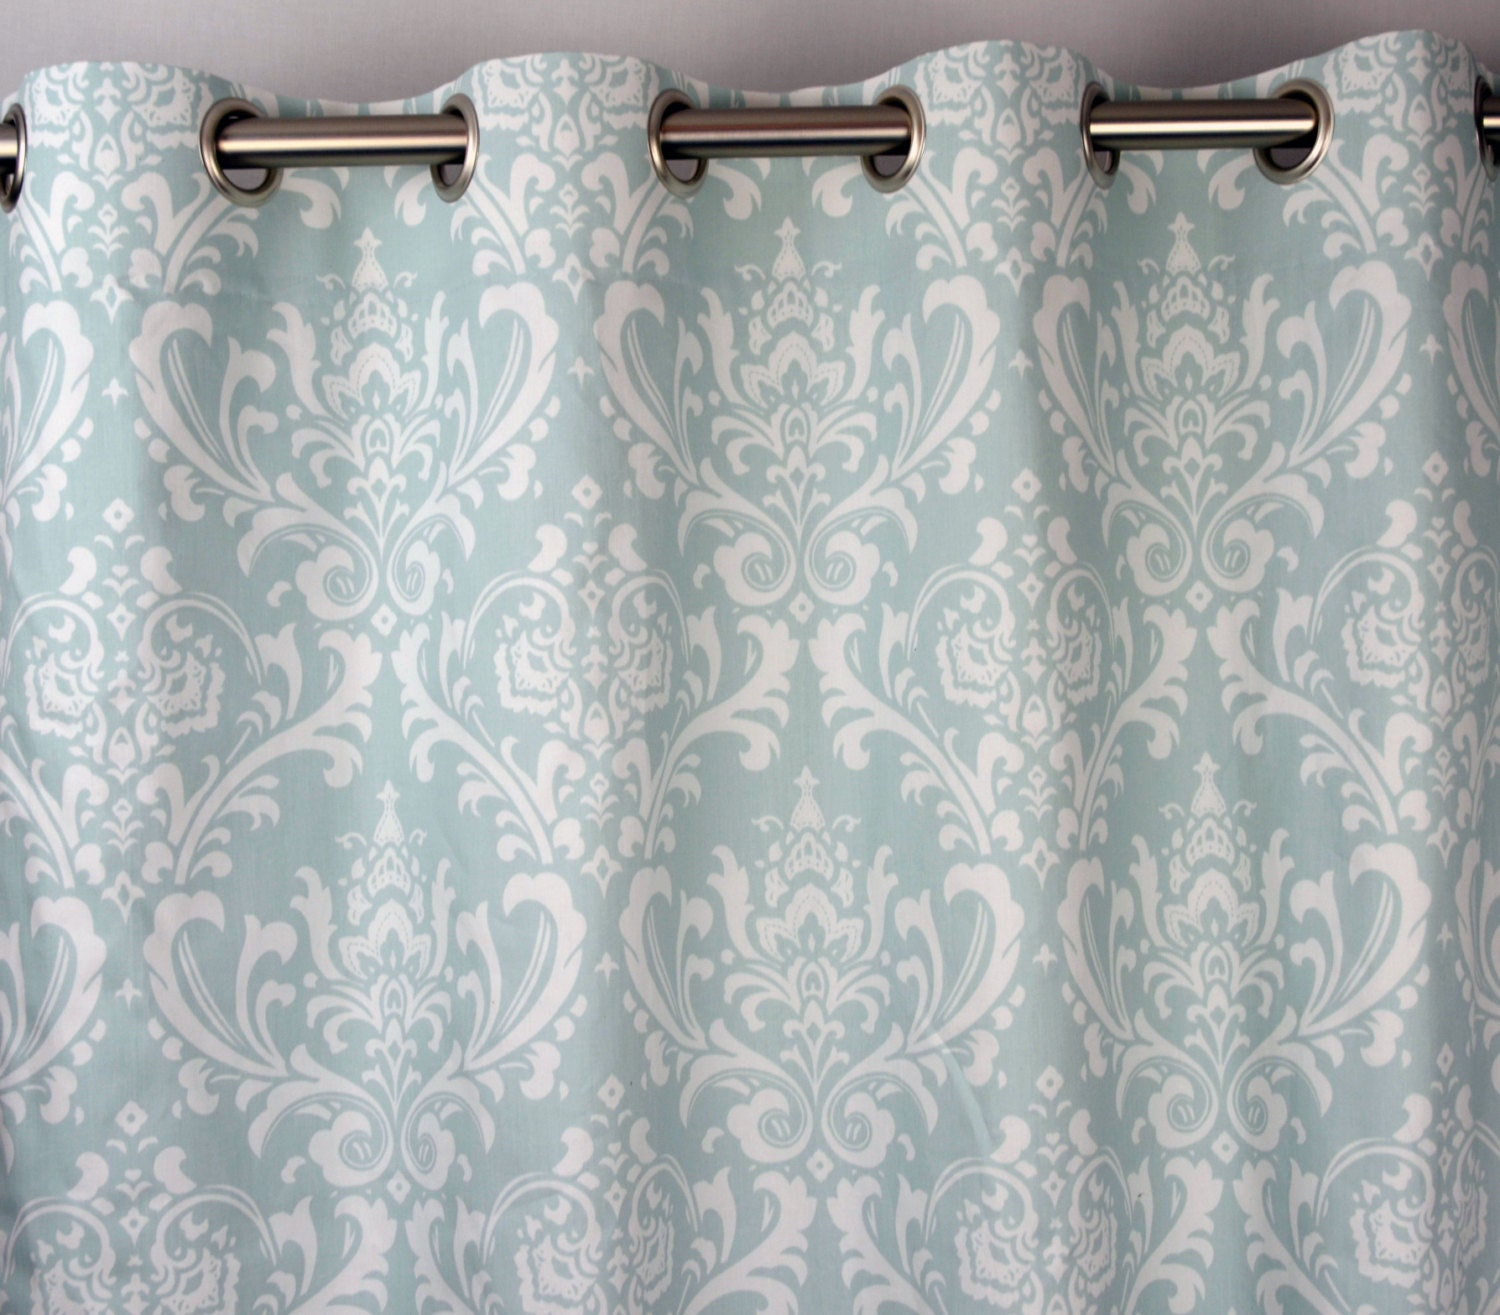 Pair of Grommet Top Curtains in Powder Blue and White Ozborne Damask ...